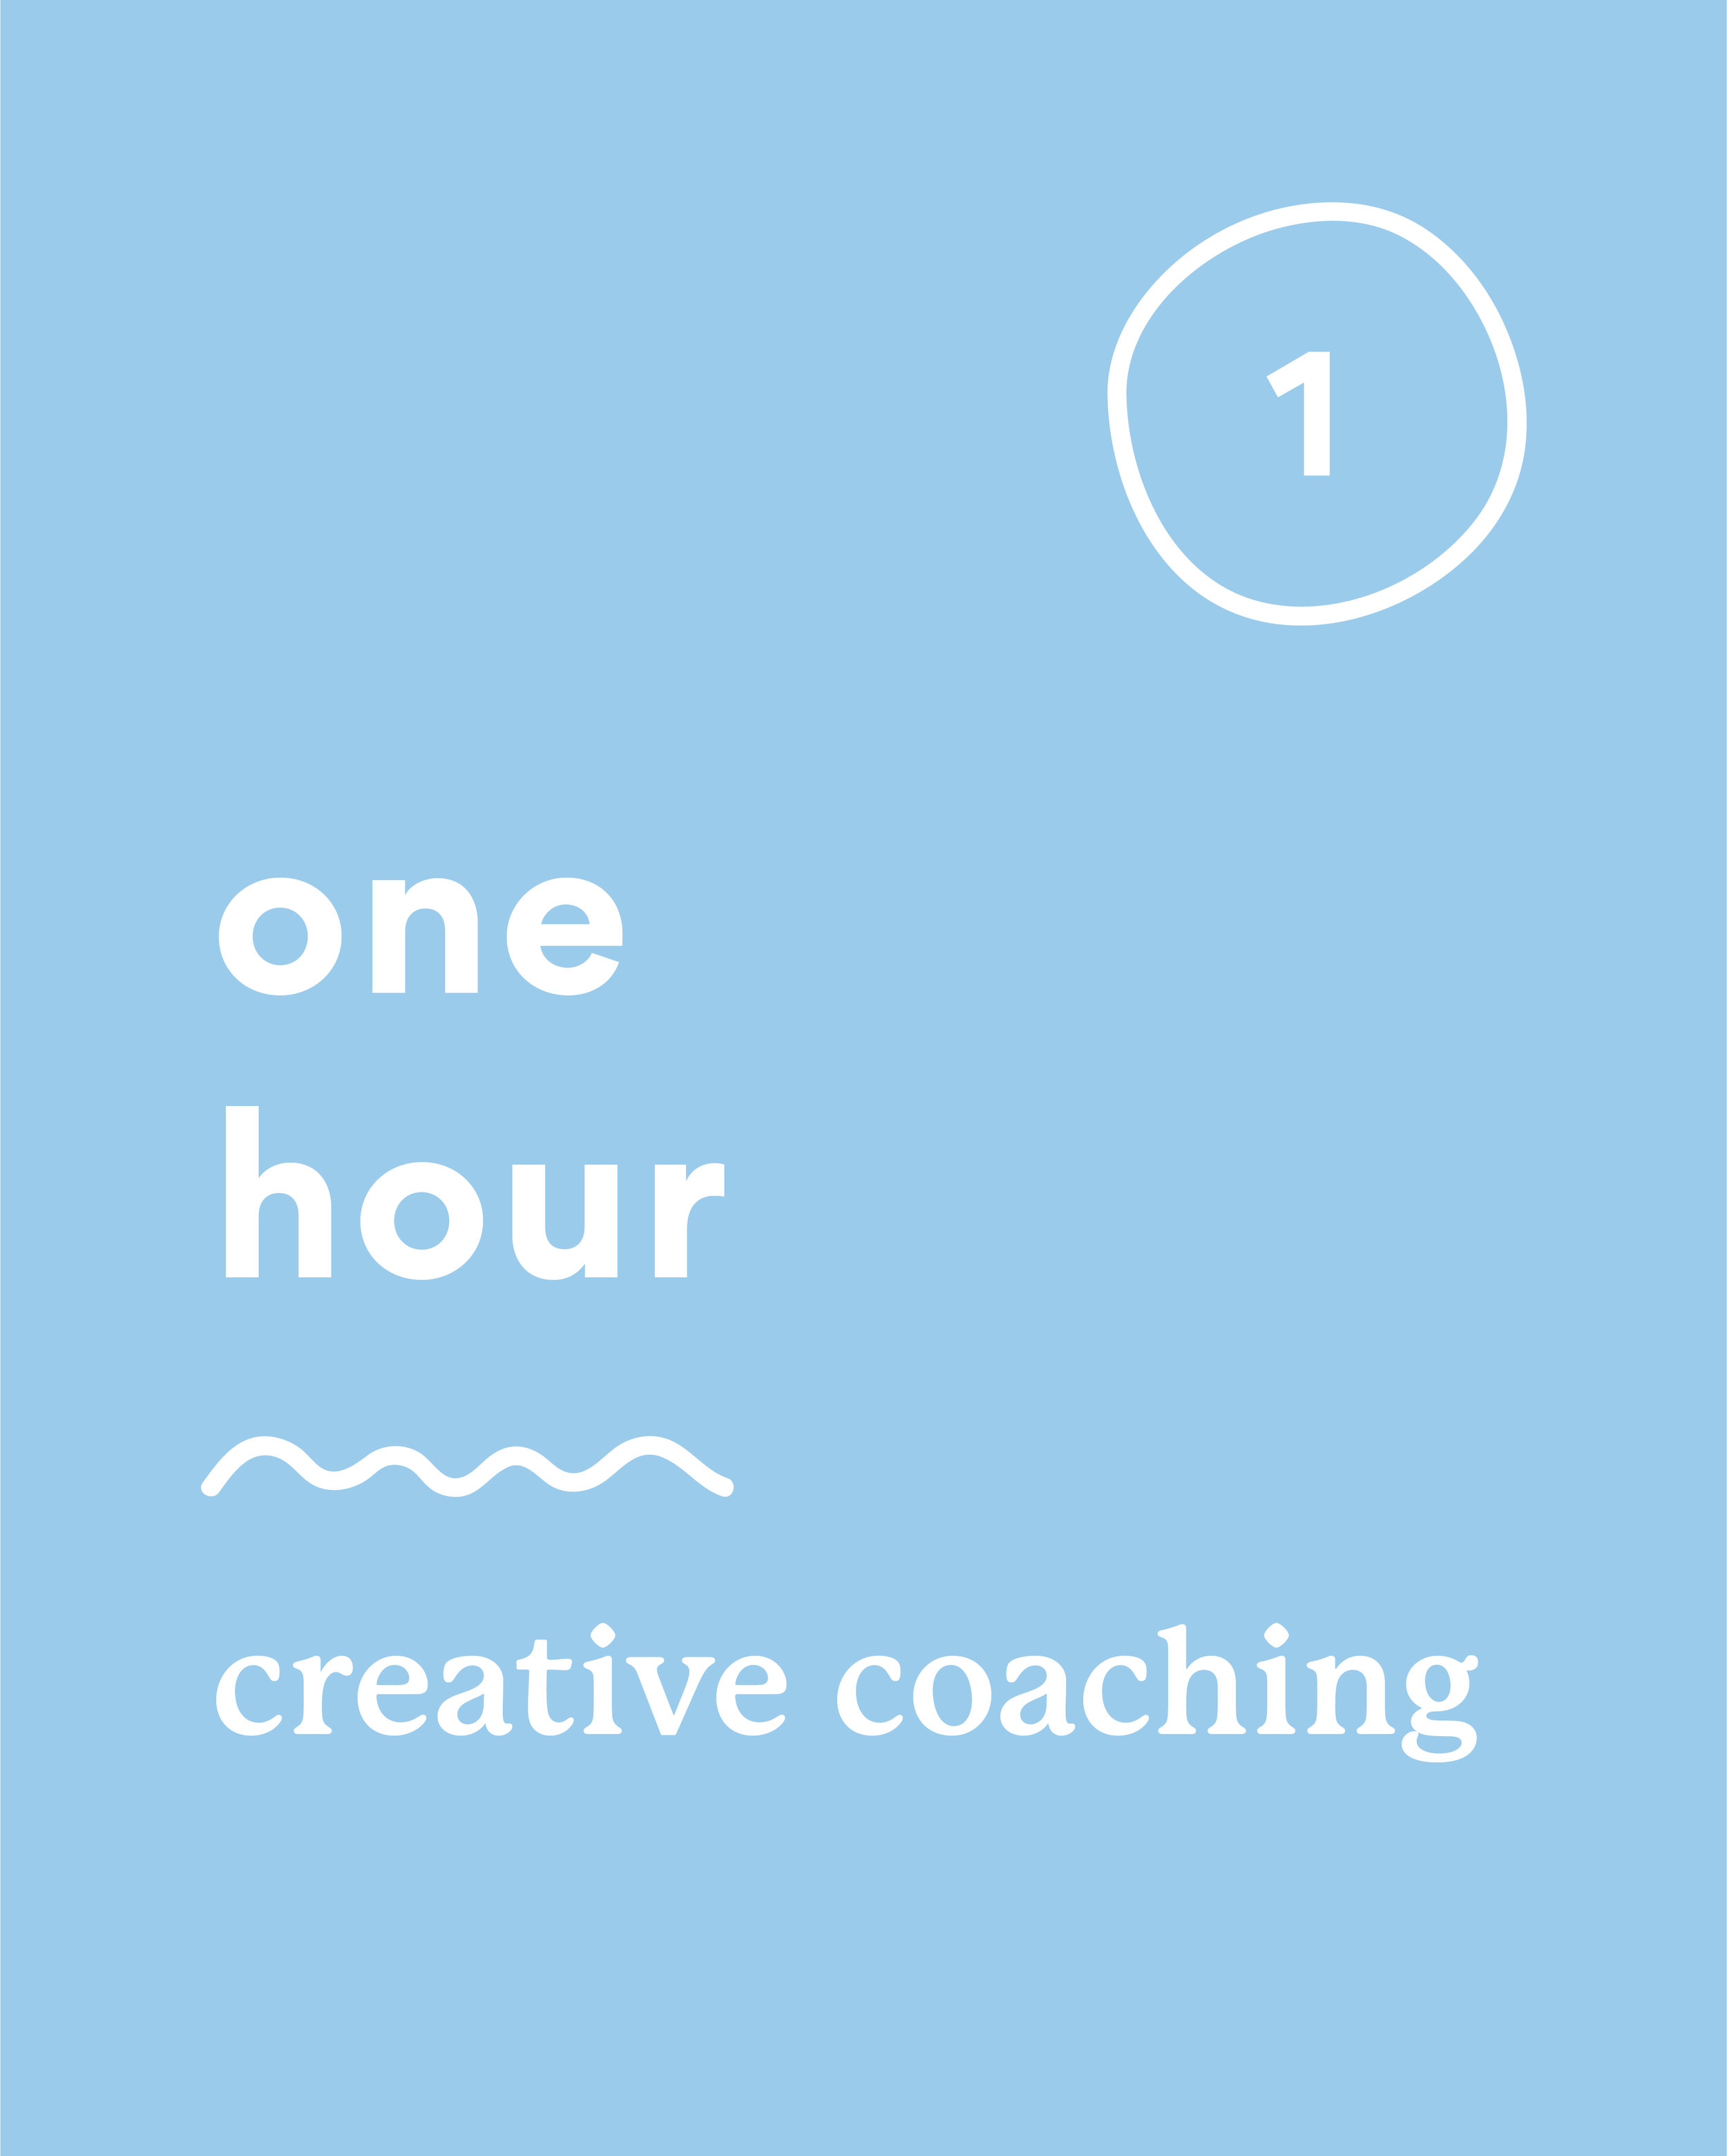 Creative_Coaching_Consulting_One_Hour_Help